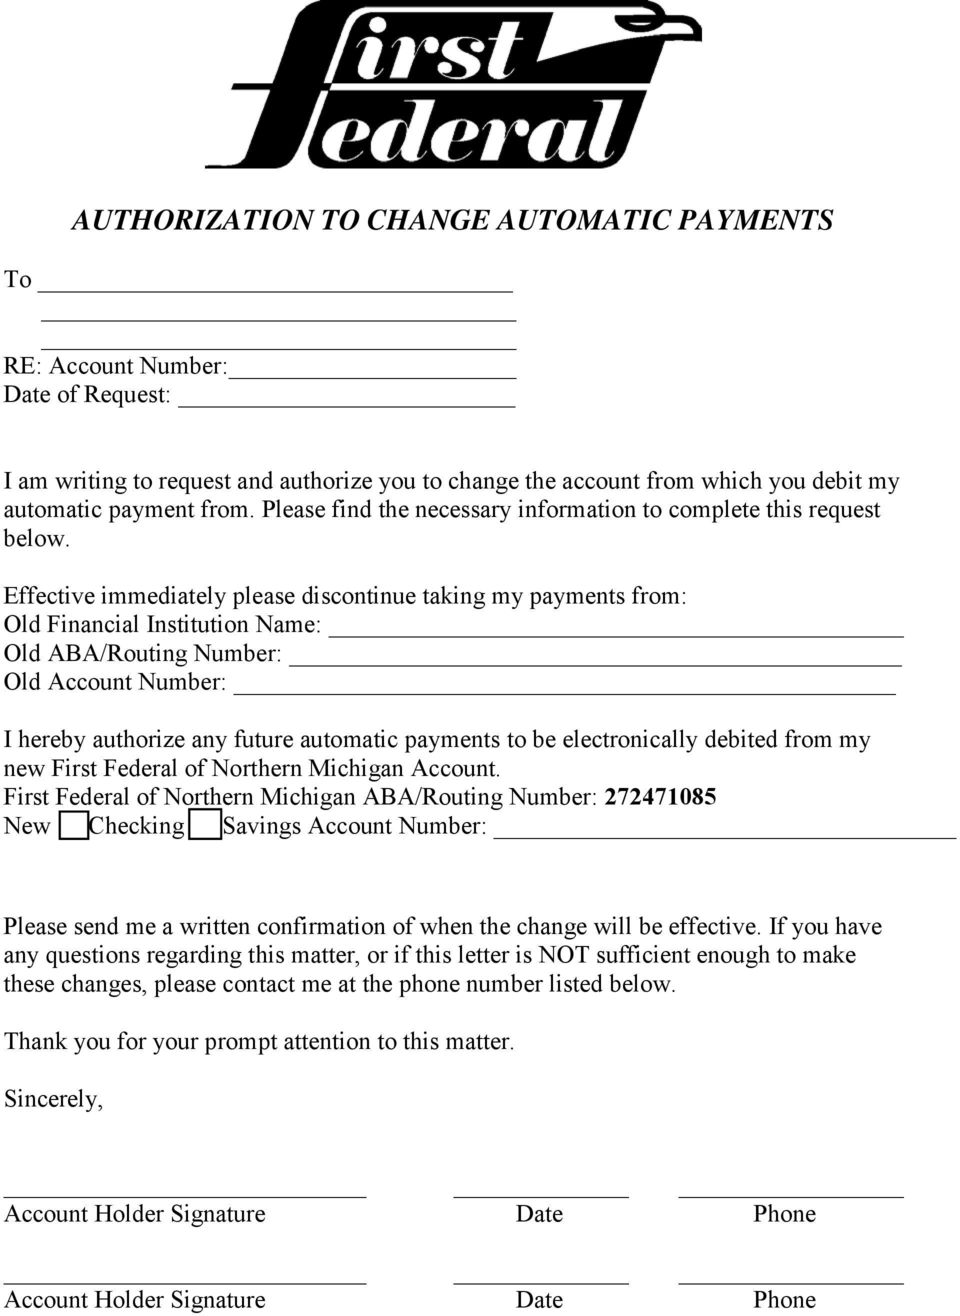 Effective immediately please discontinue taking my payments from: Old Financial Institution Name: Old ABA/Routing Number: Old Account Number: I hereby authorize any future automatic payments to be